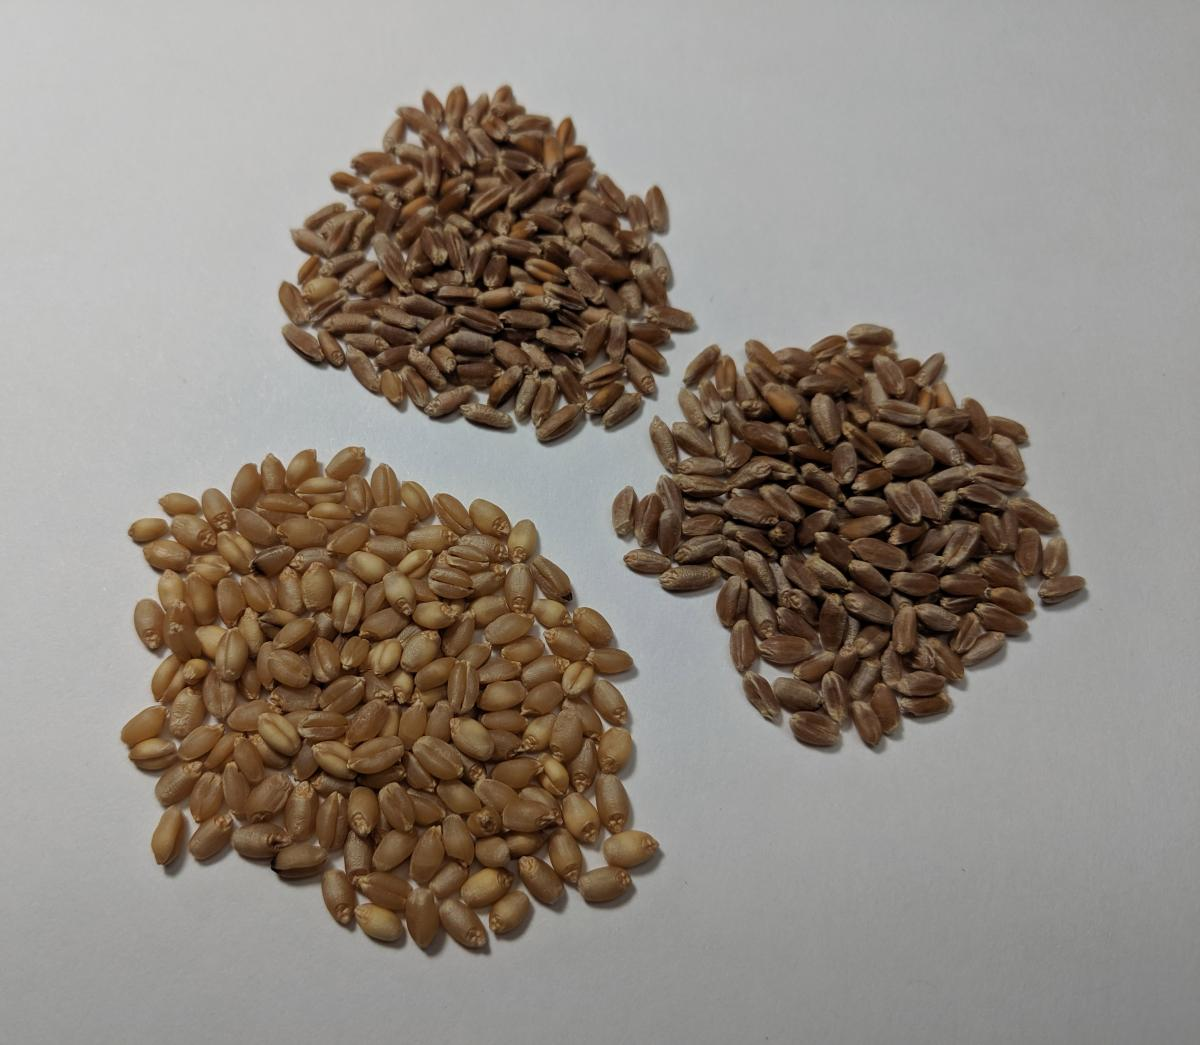 Three groups of weed seeds in various sizes